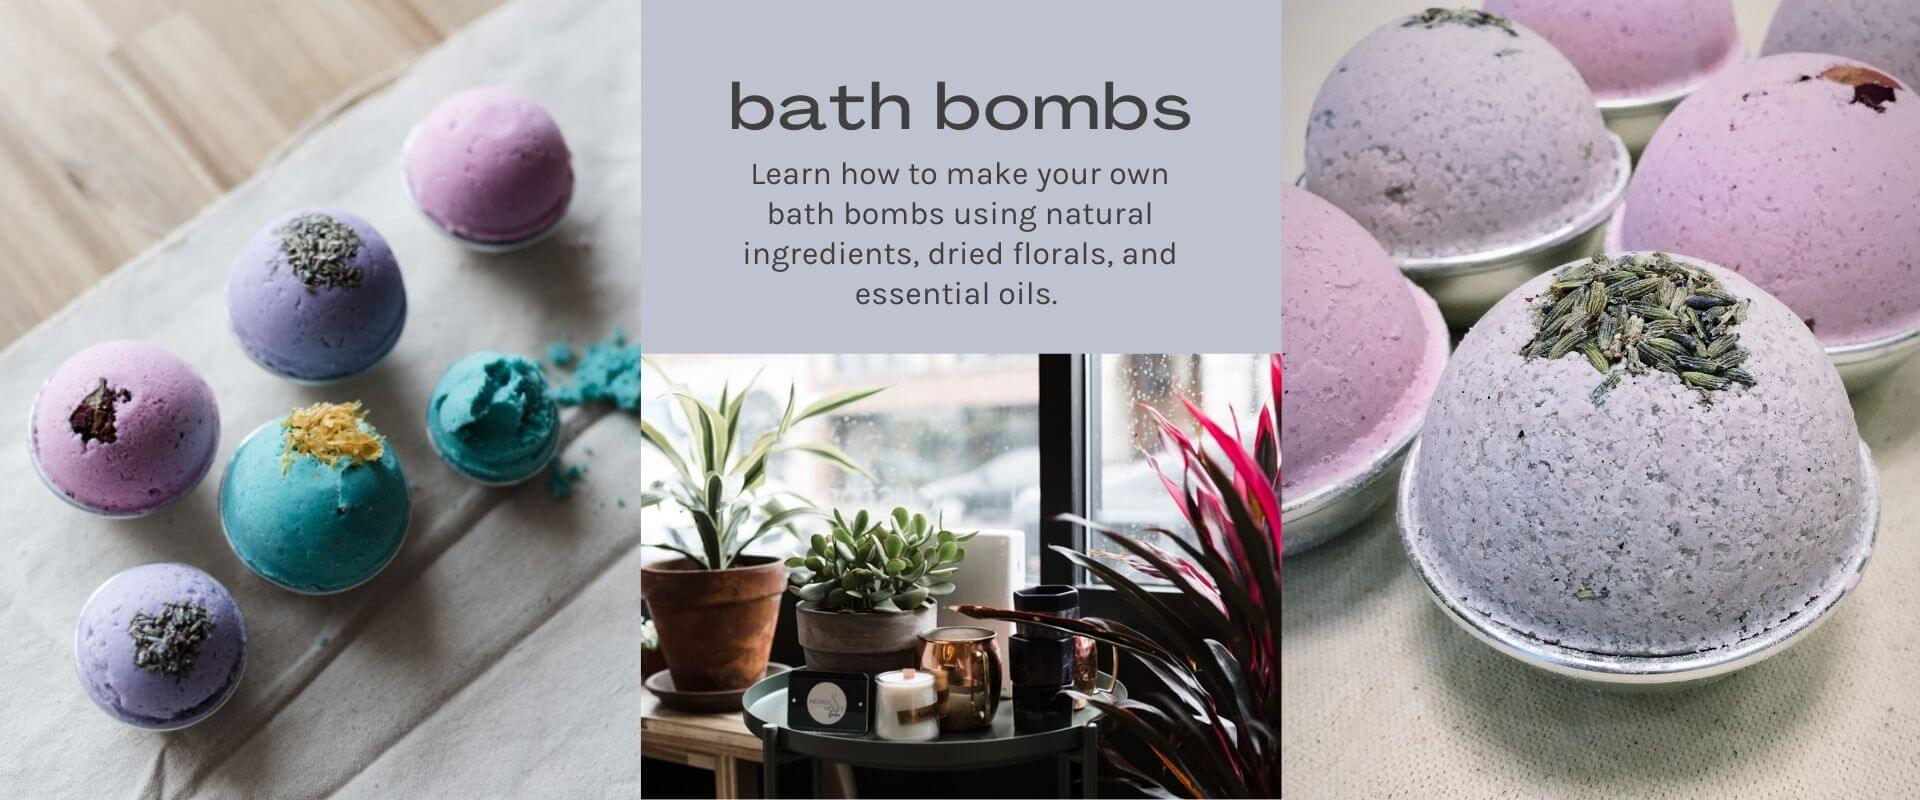 text- bath bombs image- light pink and purple bath bombs on canvas background